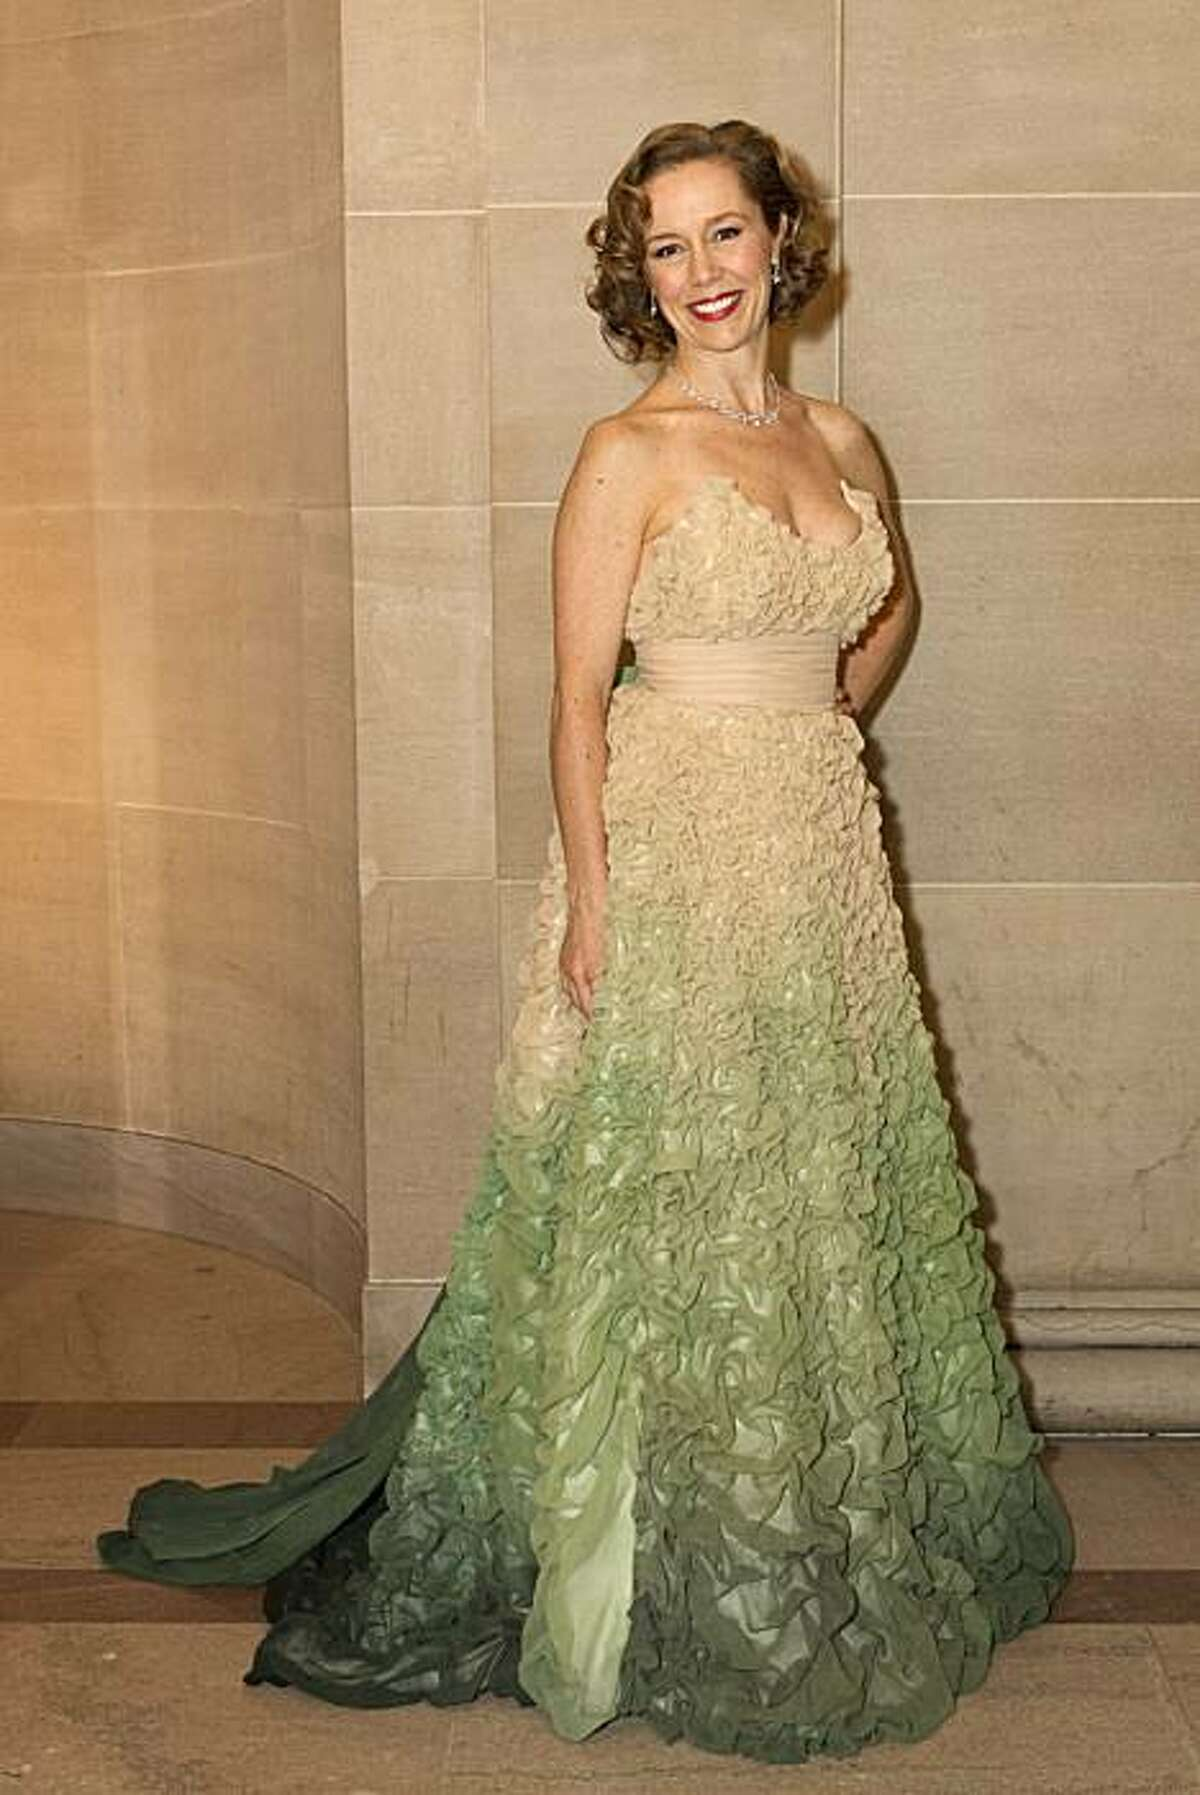 Larissa Roesch wears a blush and green ombre gown by Verrieres & Sako to the San Francisco Ballet 2011 Opening Night Gala at City Hall in San Francisco, Calif., on Wednesday, January 26, 2011.